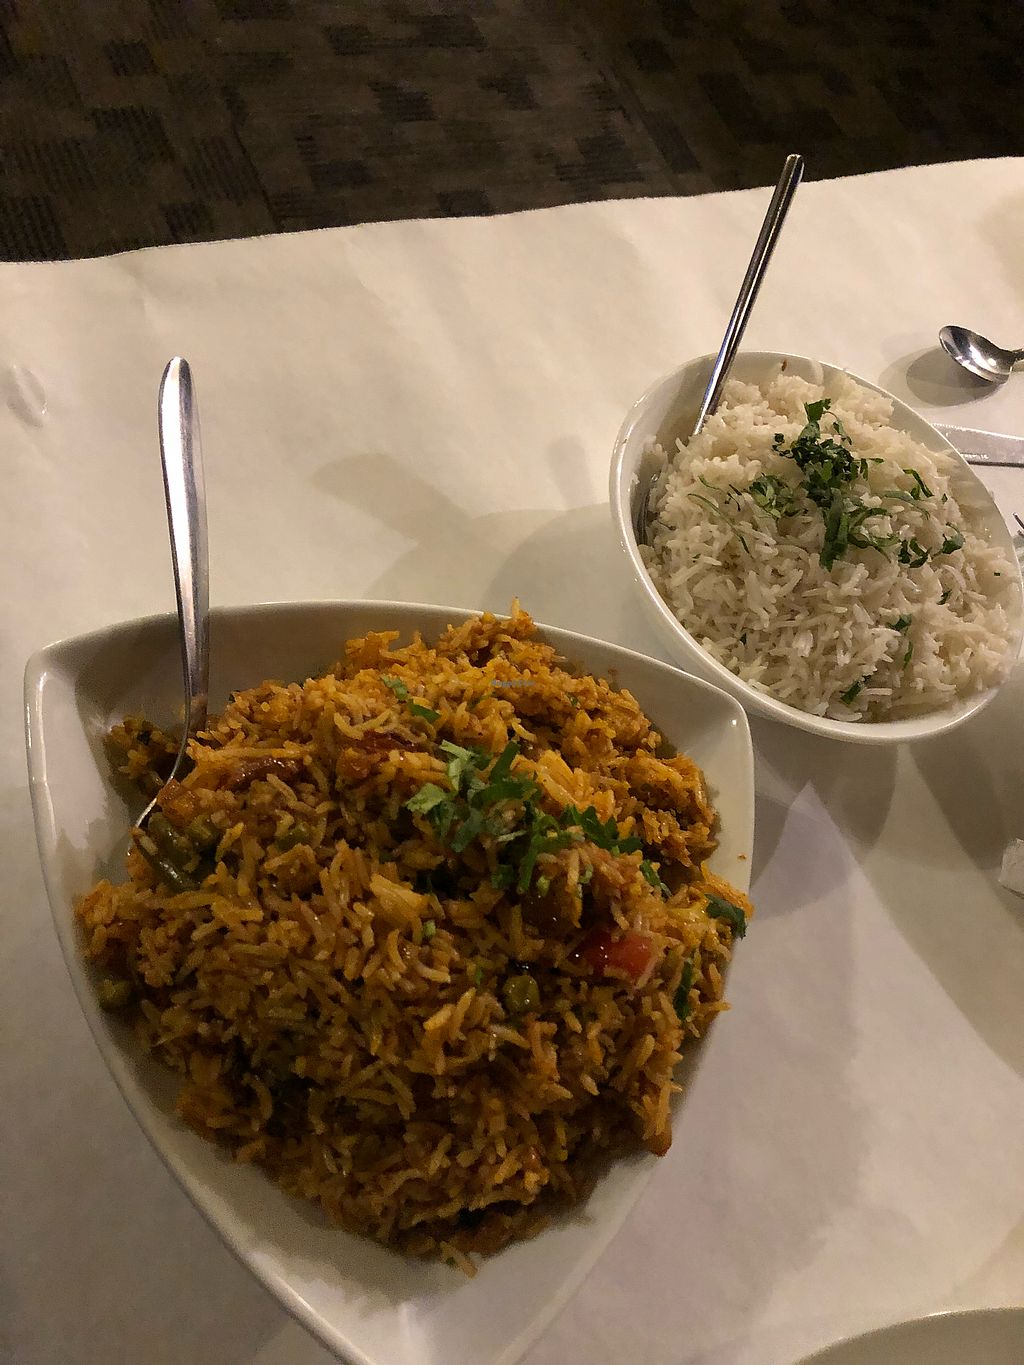 "Photo of Shahi Palace  by <a href=""/members/profile/Jadediana"">Jadediana</a> <br/>Vegetable Biryani and plate of white rice  <br/> April 5, 2018  - <a href='/contact/abuse/image/115816/380883'>Report</a>"